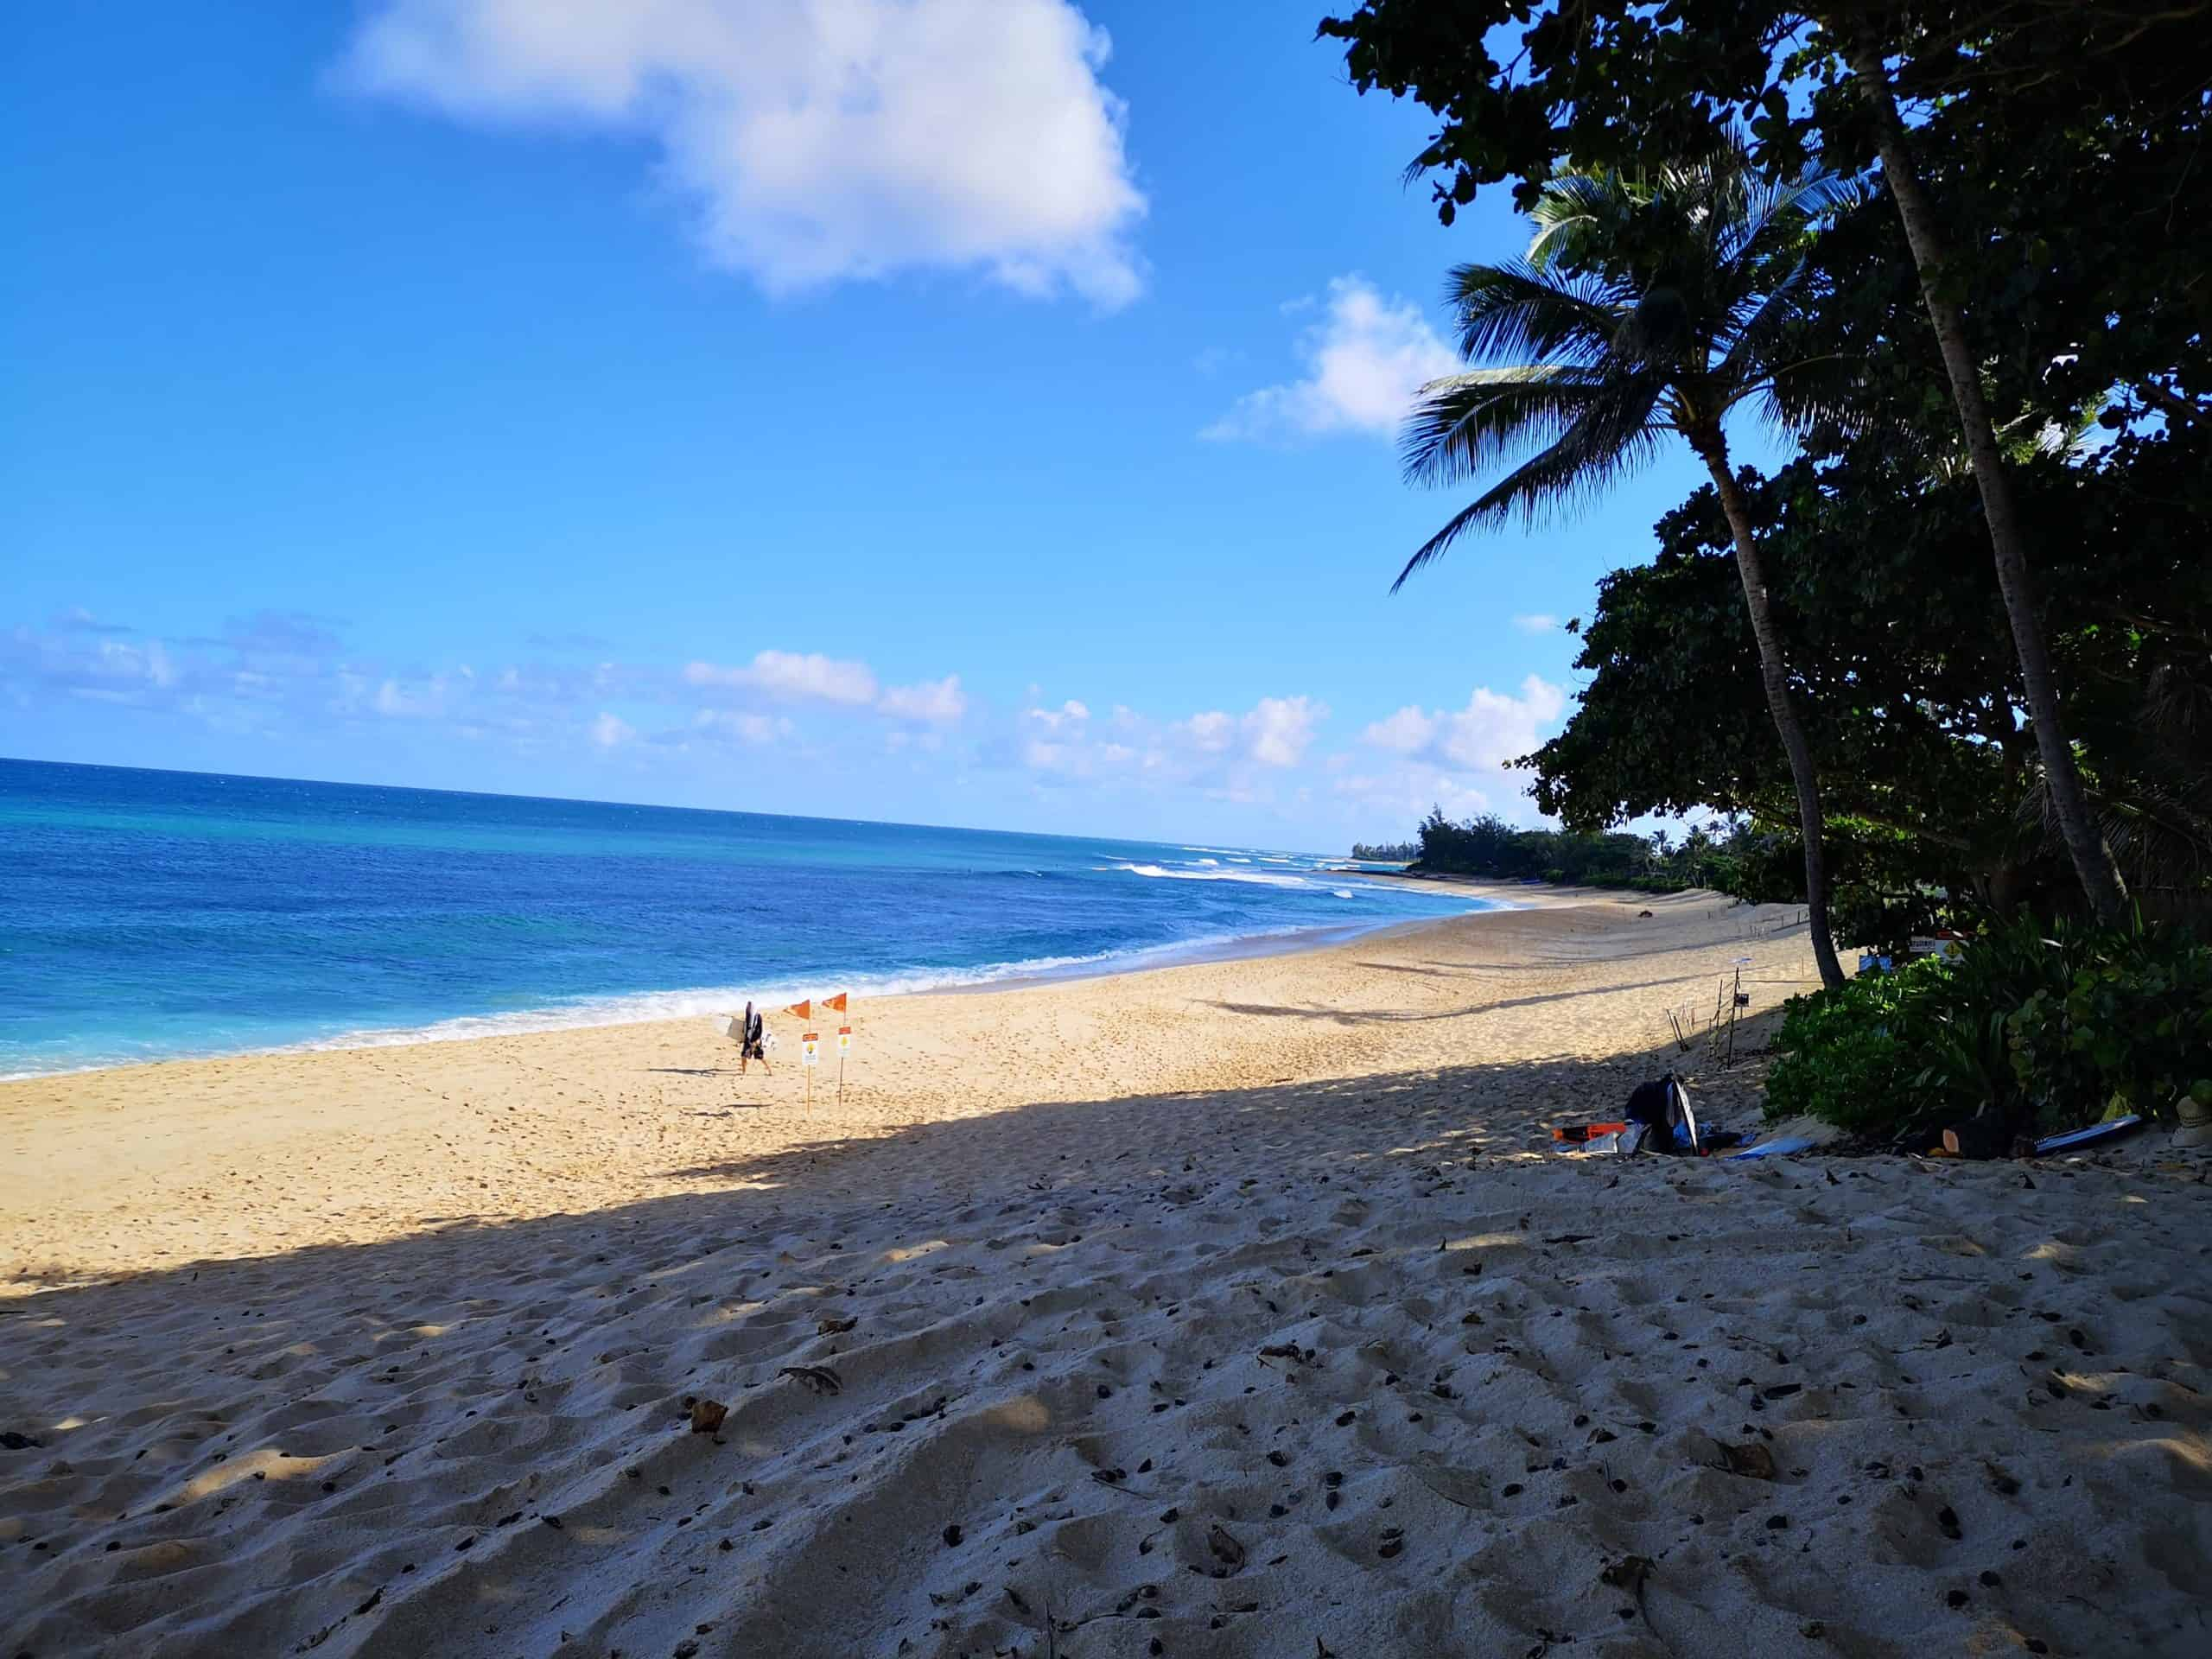 The Banzai Pipeline Beach